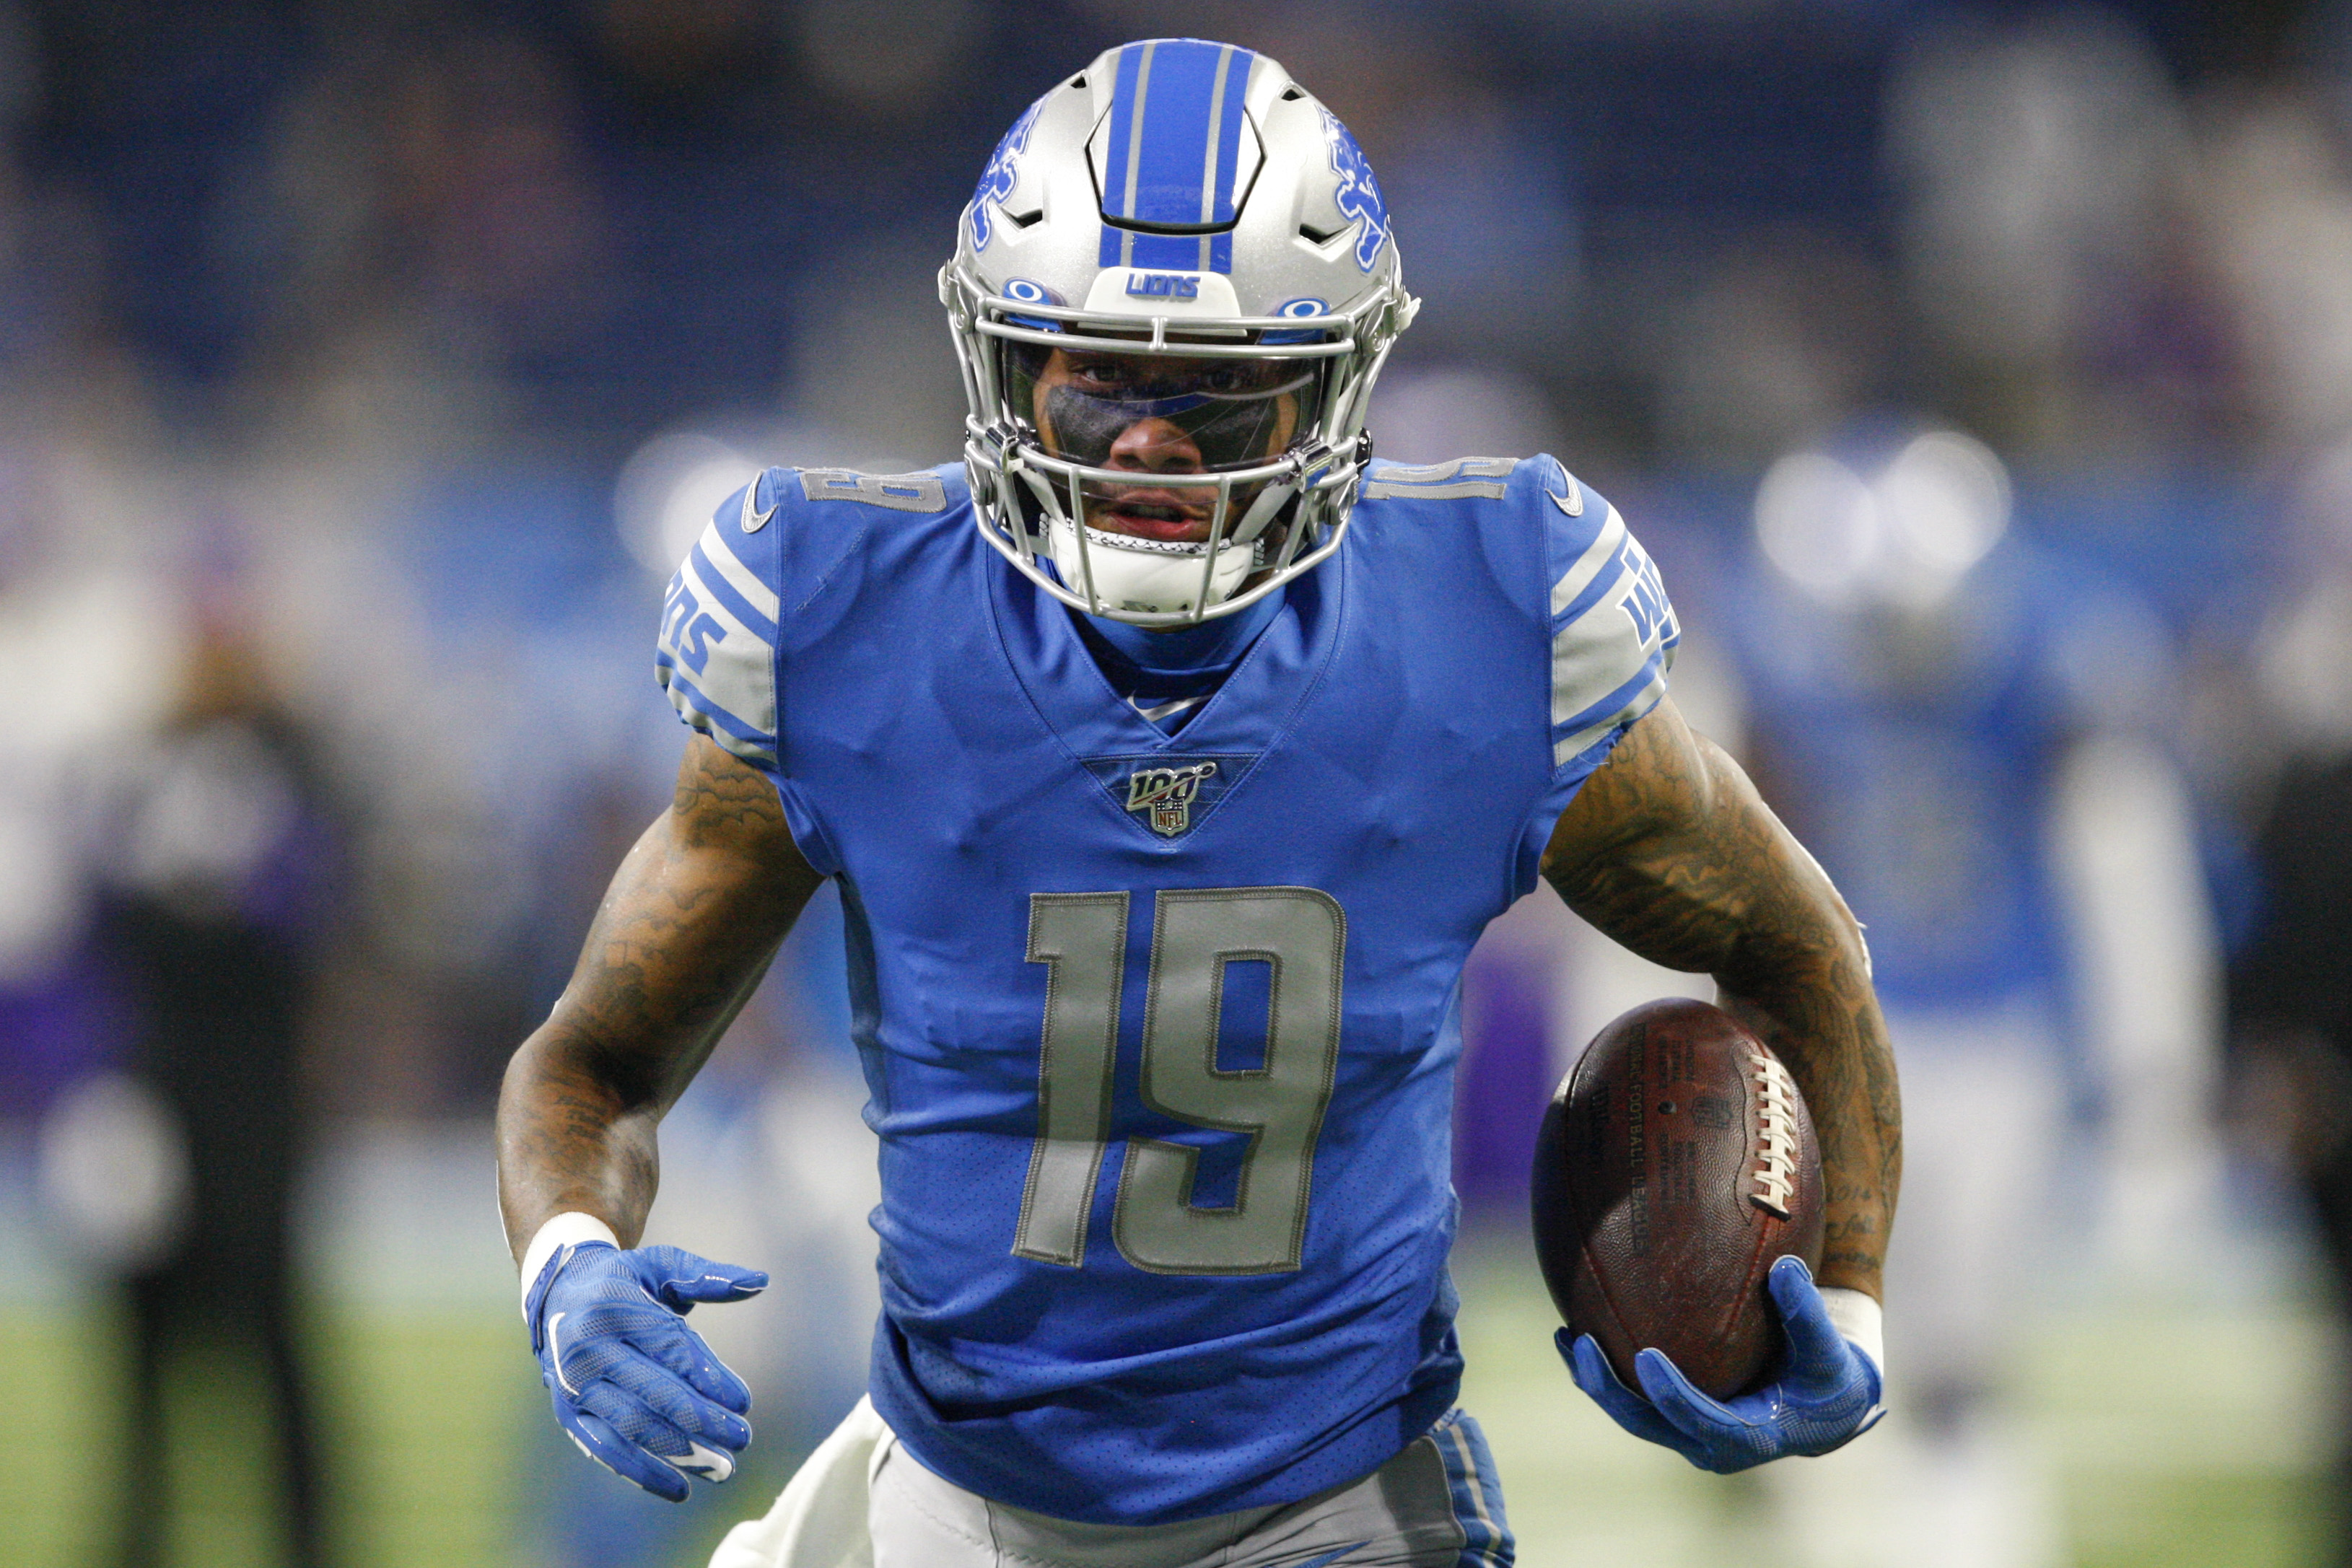 Detroit Lions wide receiver Kenny Golladay warms up before the game against the Minnesota Vikings at Ford Field.